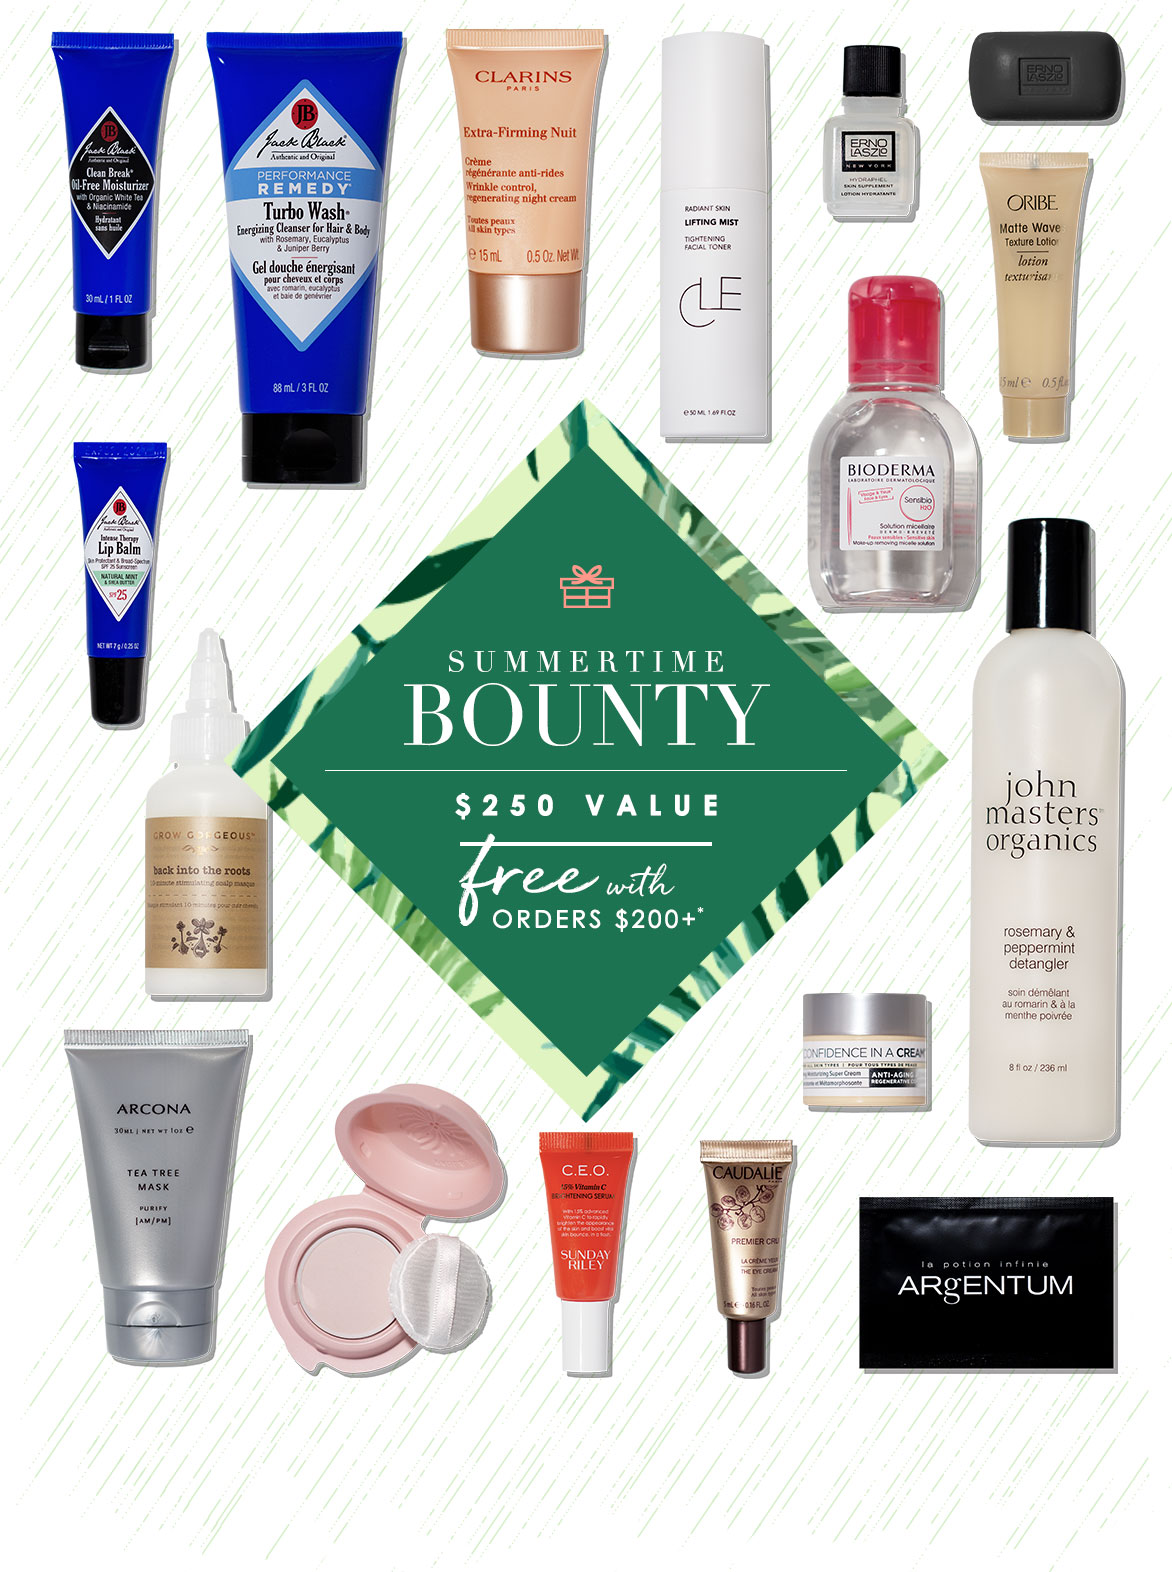 Our gift to you: must-Haves, Obsession-Worthy, cult-coveted beauty.